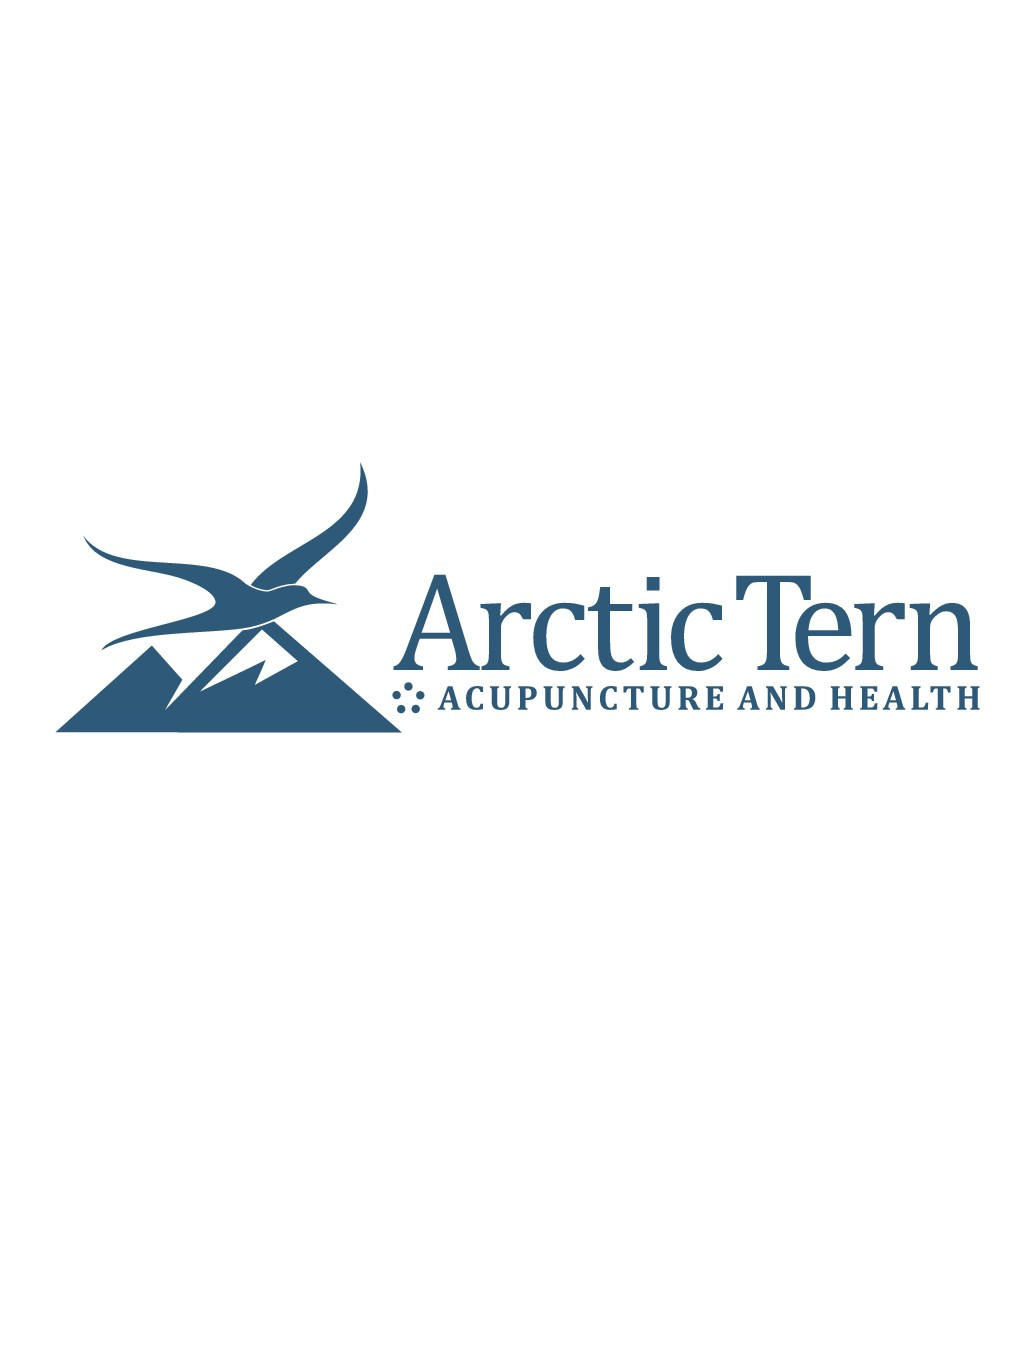 Create a standout logo featuring Arctic Tern Acupuncture and Health